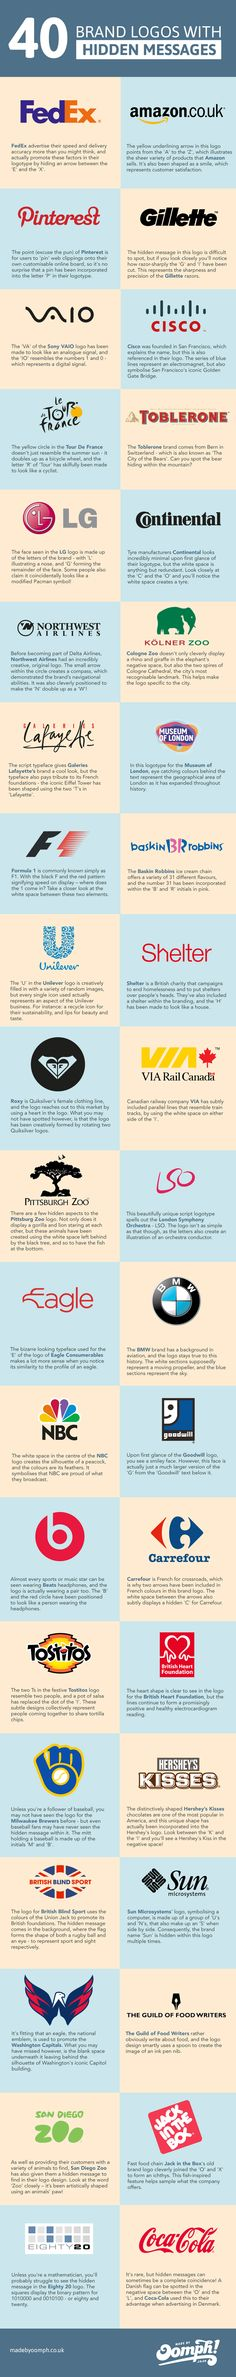 Love this infographic - famous brand logos you've seen thousands of time, but you may not have noticed some of their finer detail? (Credit: Oomph)